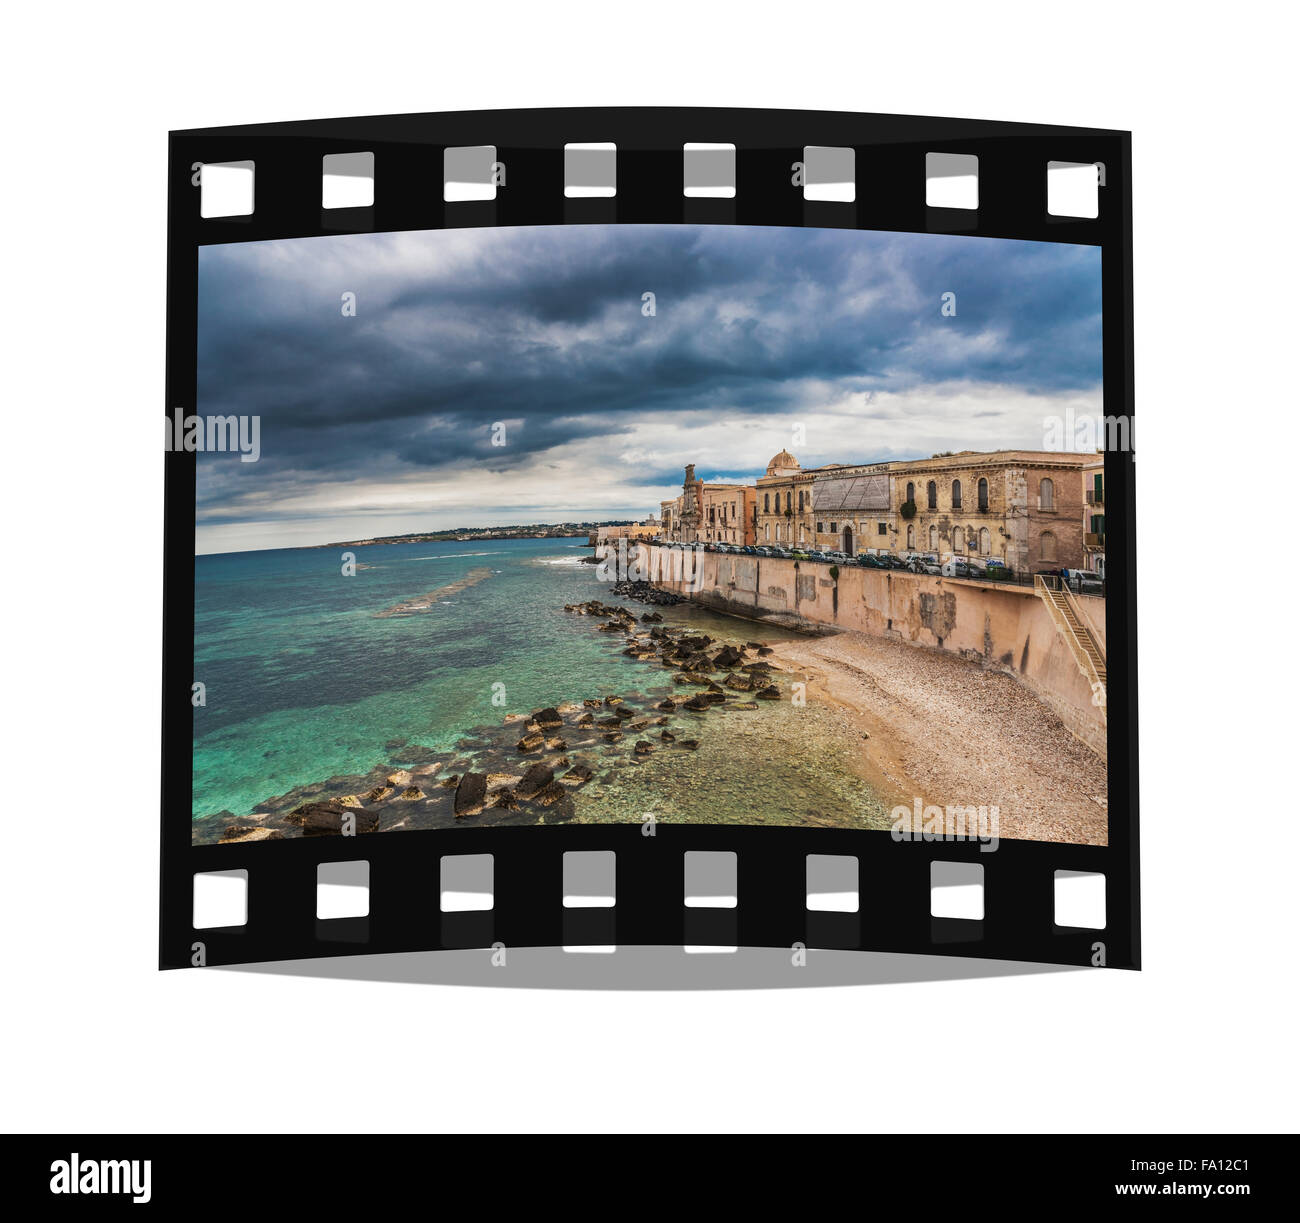 Seafront Promenade in the historic center of Syracuse. The old town is located on Ortigia Island, Sicily, Italy, - Stock Image